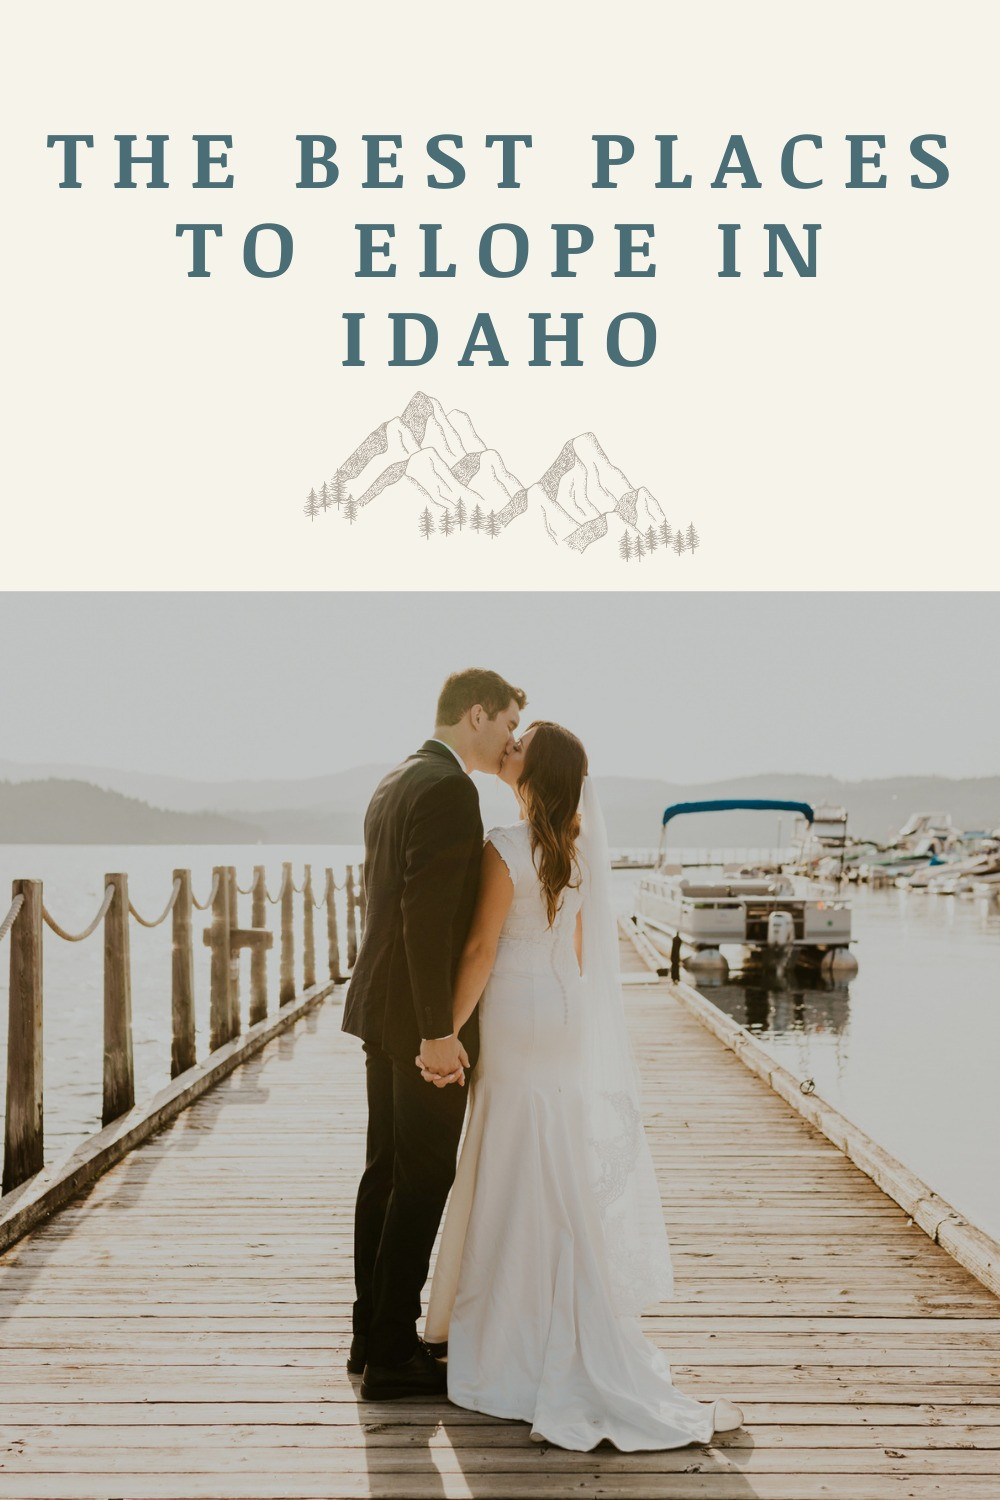 the best places to elope in idaho for your adventure elopement, idaho towns and activities to do and see